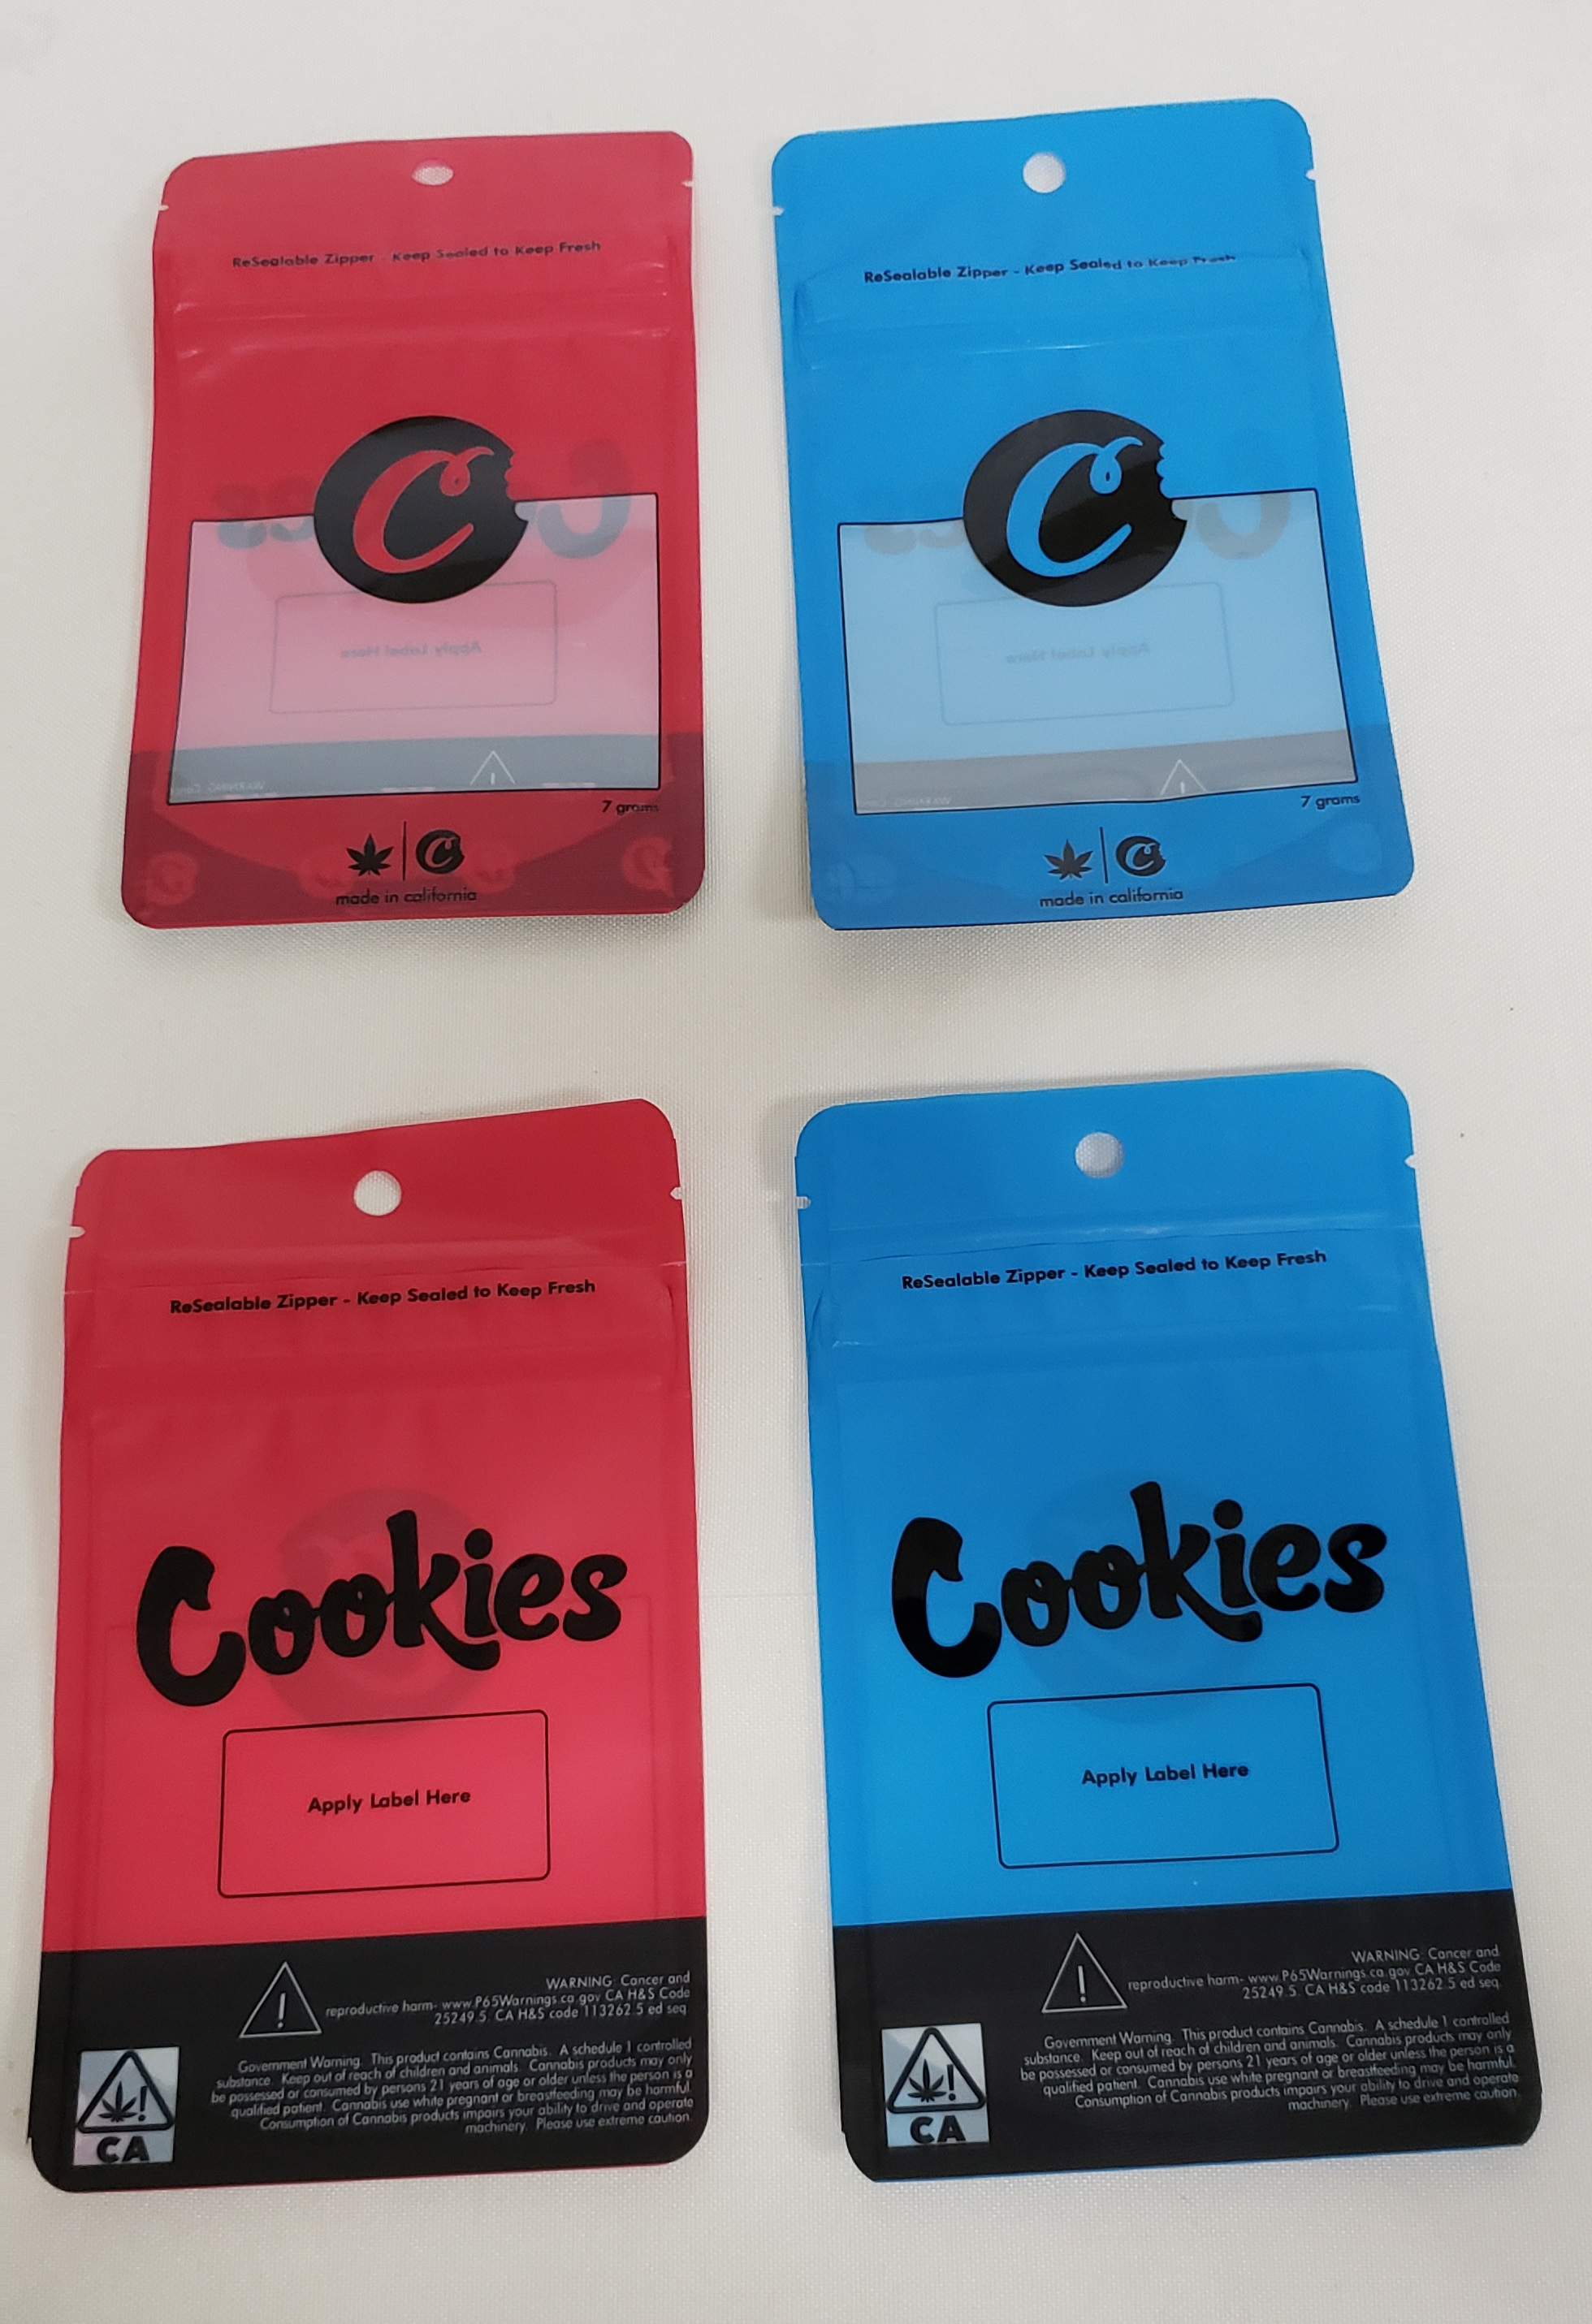 *Baggies-10 Pack Cookies design Big 7 Gm. bags for Storage #Bag4